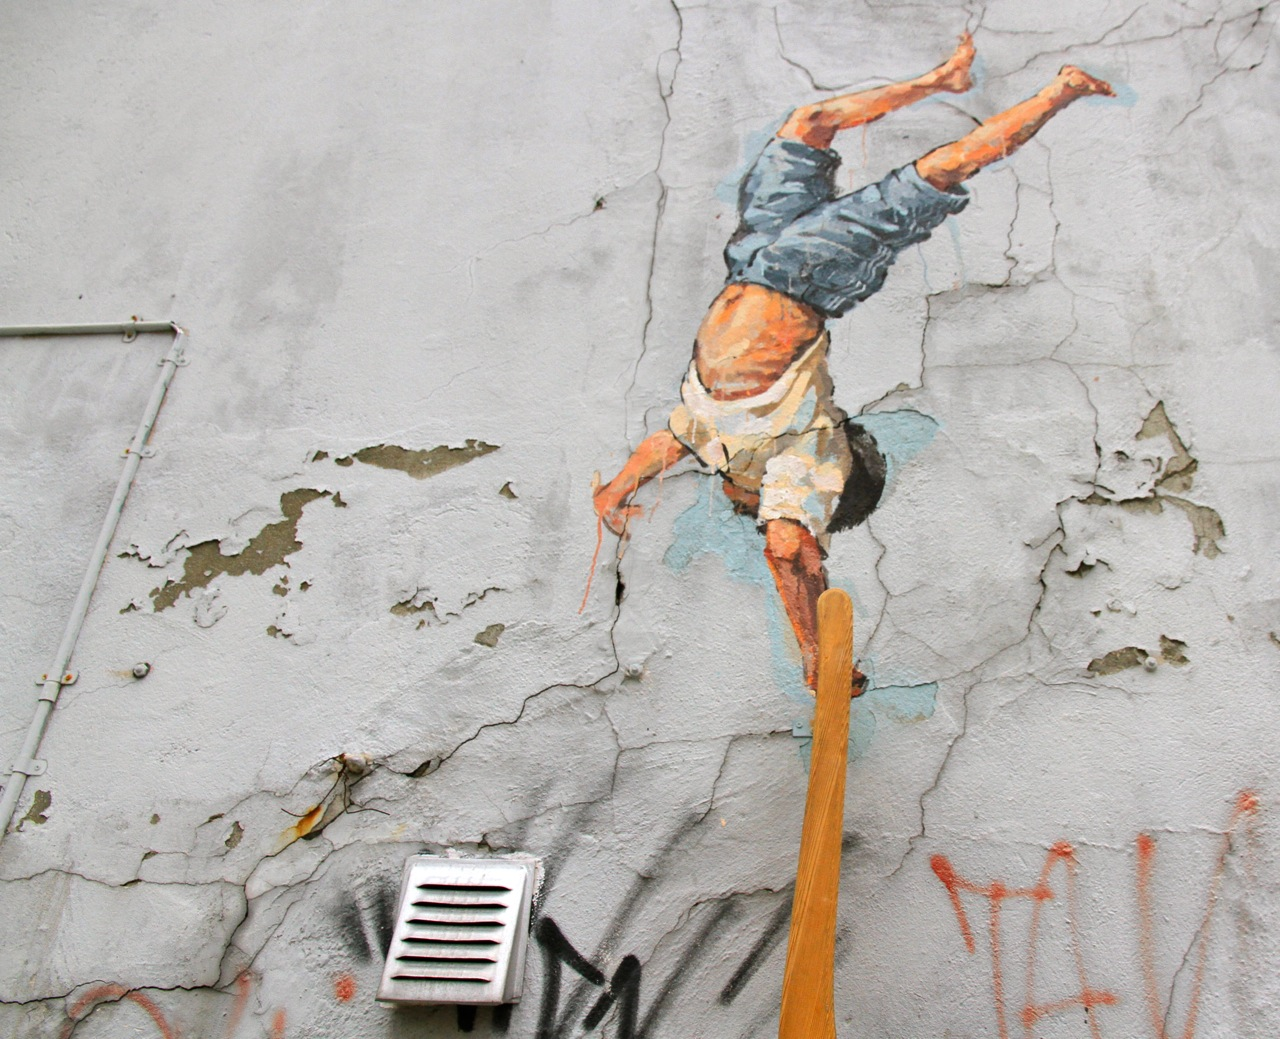 Nuart 2013: Street Pieces, Part 1: Ernest Zacharevic IMG_1312.jpg